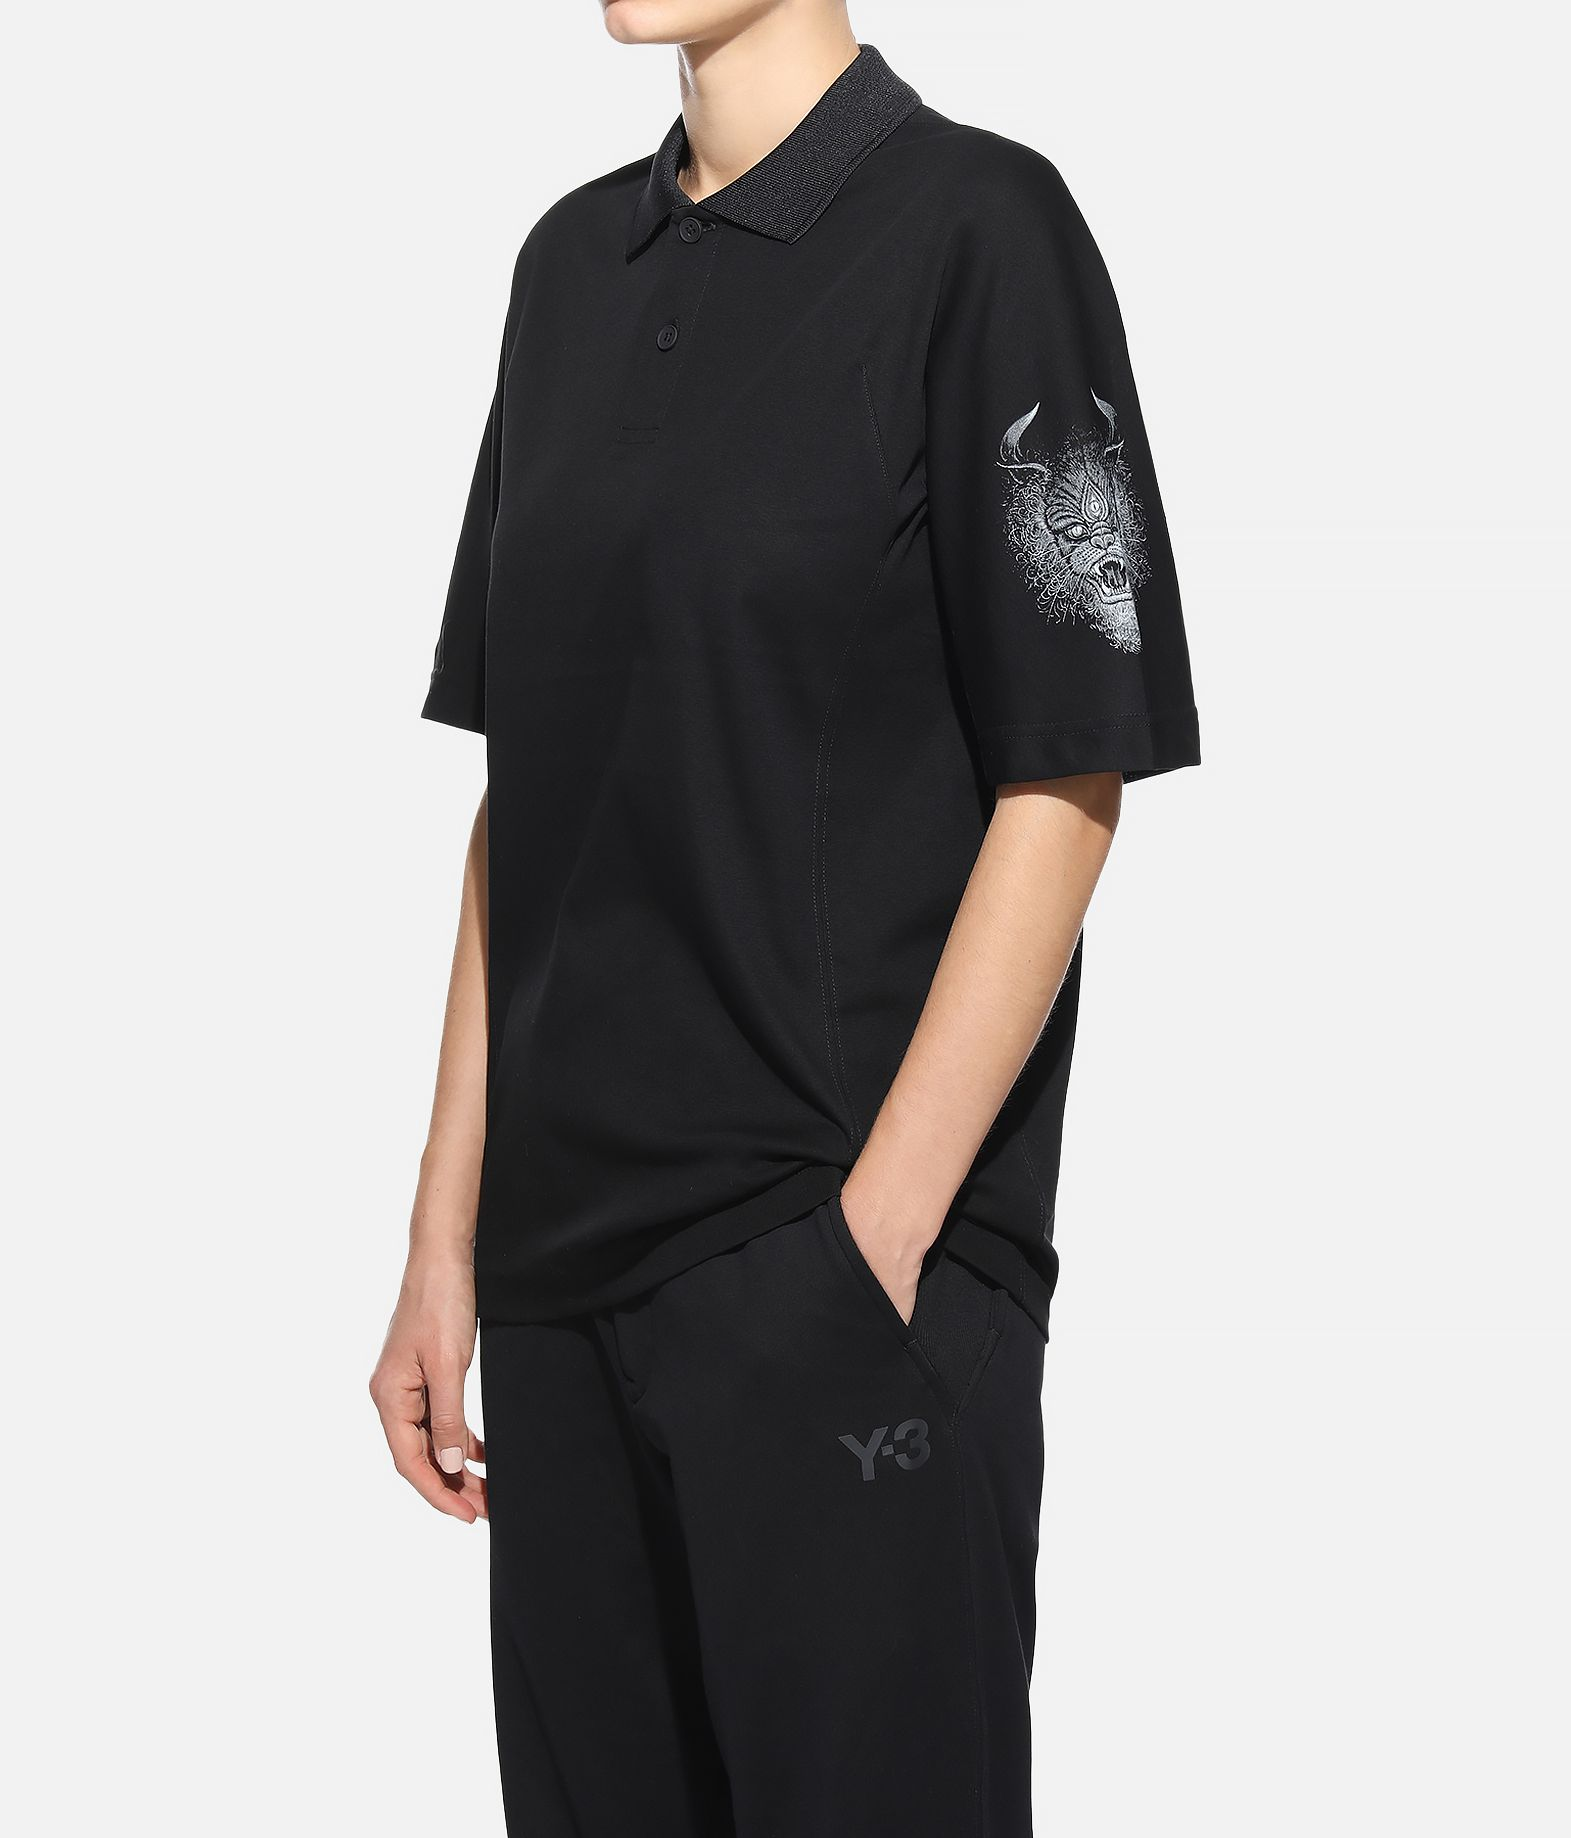 Y-3 Y-3 Short Sleeve Polo Shirt  Polo Woman e